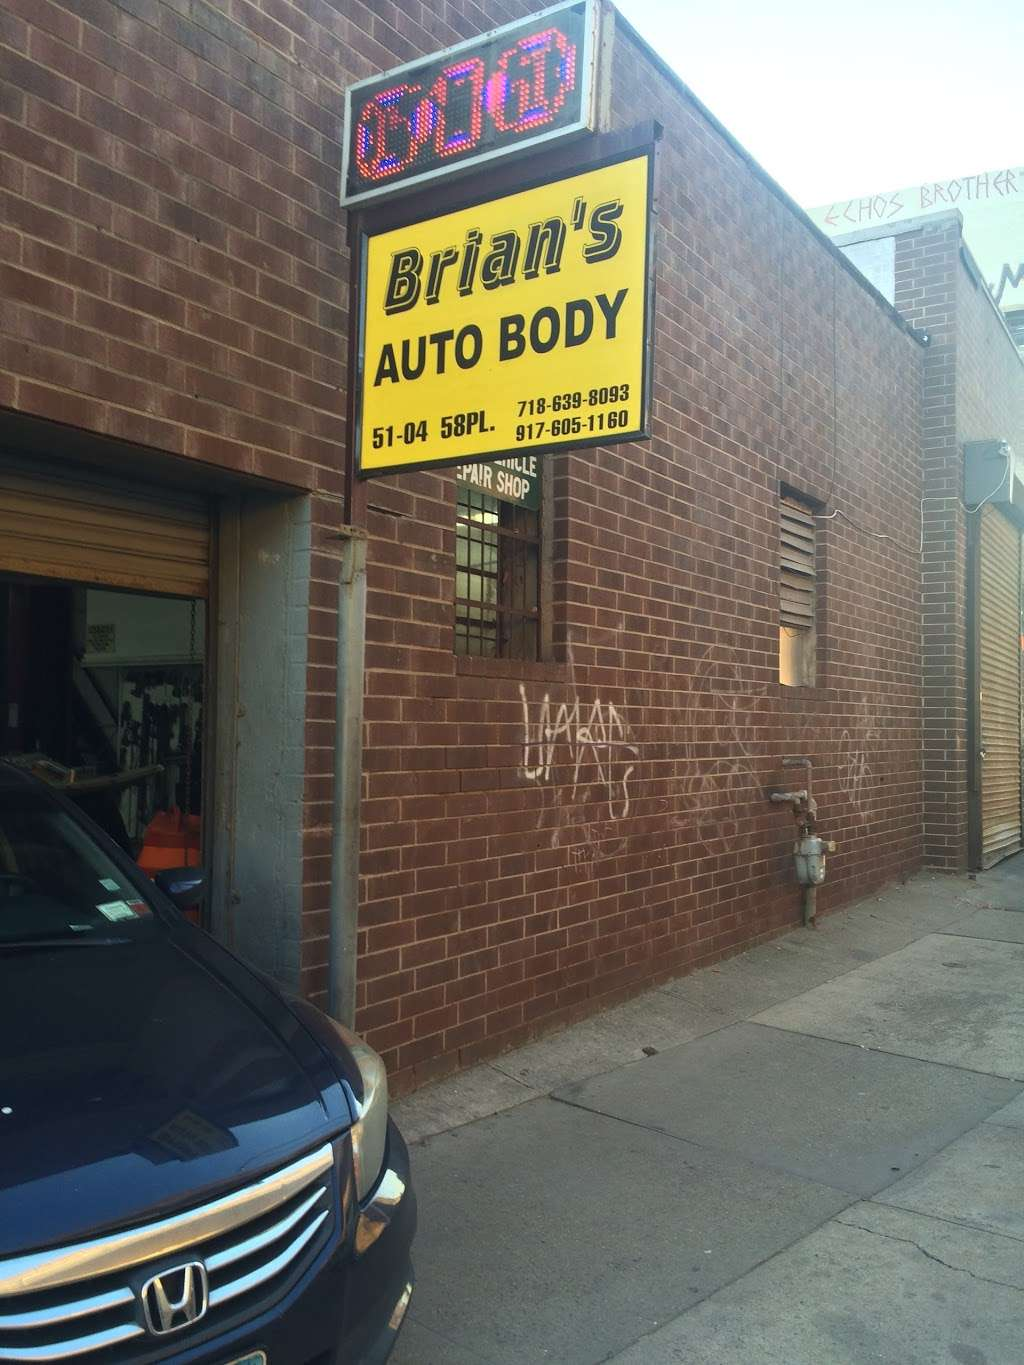 Brians Auto Body Shop Inc - car repair  | Photo 3 of 6 | Address: 51-04 58th Pl, Woodside, NY 11377, USA | Phone: (917) 605-1160